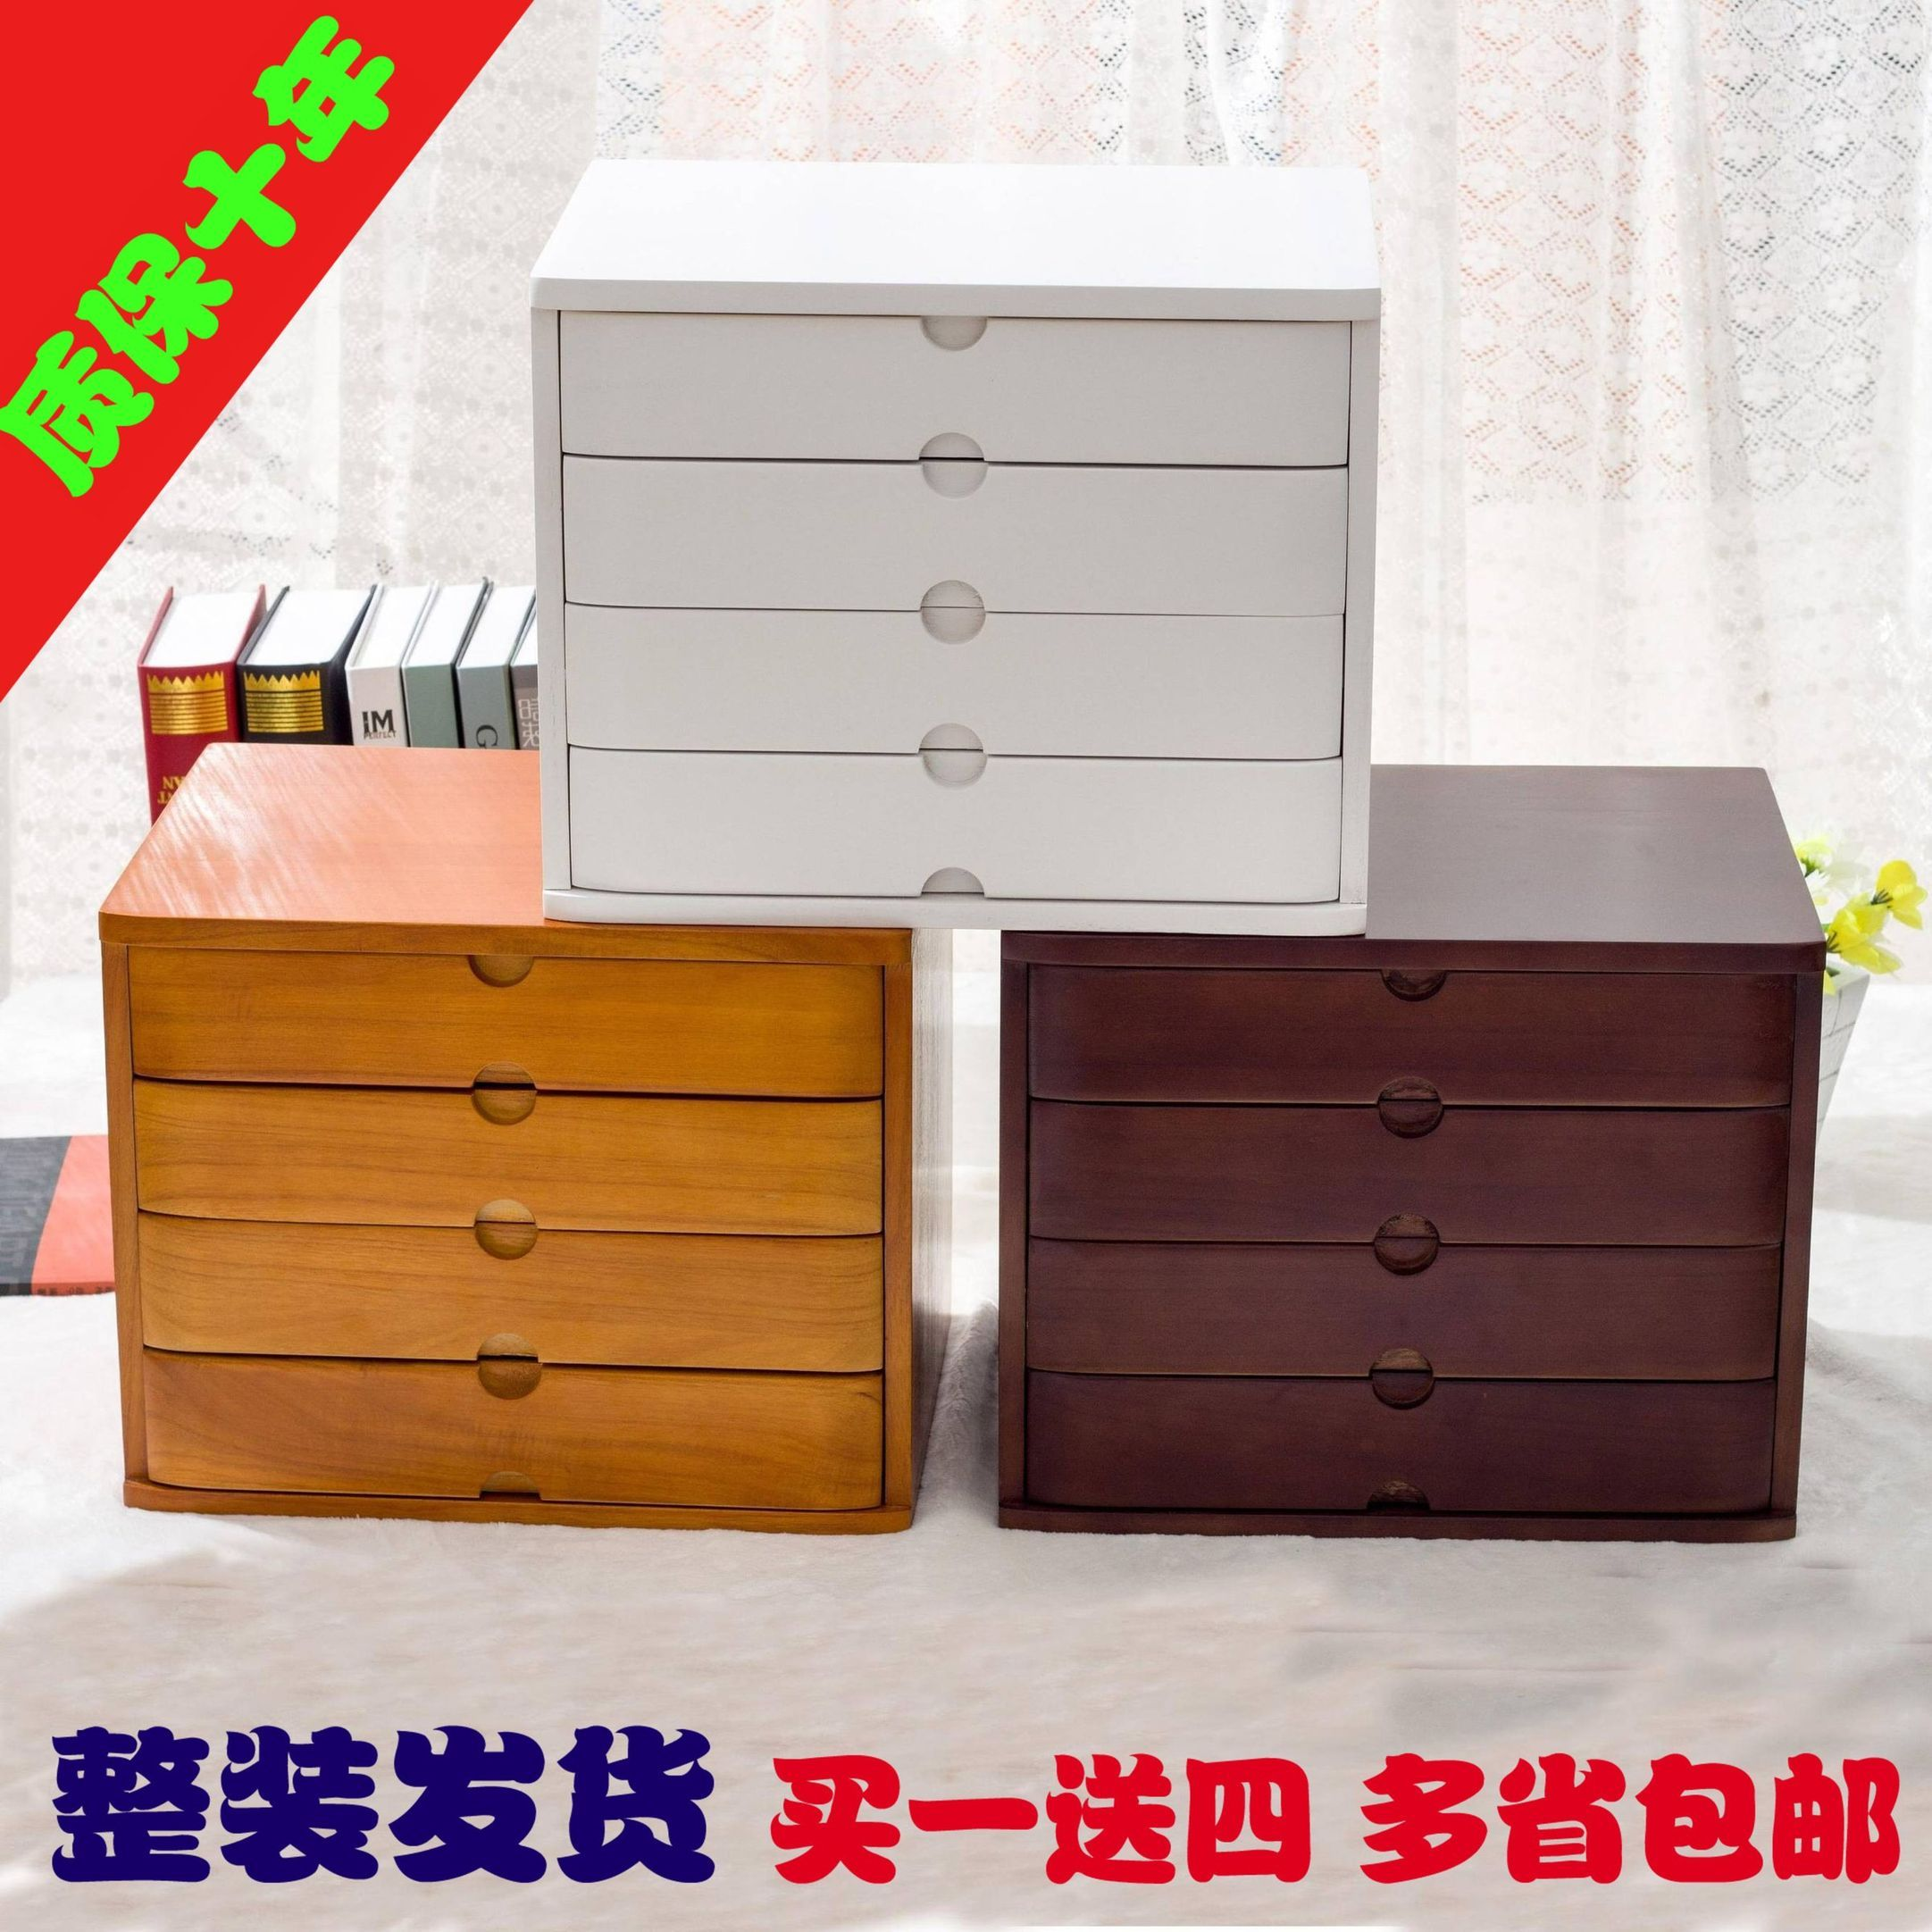 Awesome ... China Storage Box Suppliers: Office Makeup Organizer Desktop Debris  Storage Box Real Wooden Jewelry Storage Box Small Drawer Type Desk Data File  Cabinet